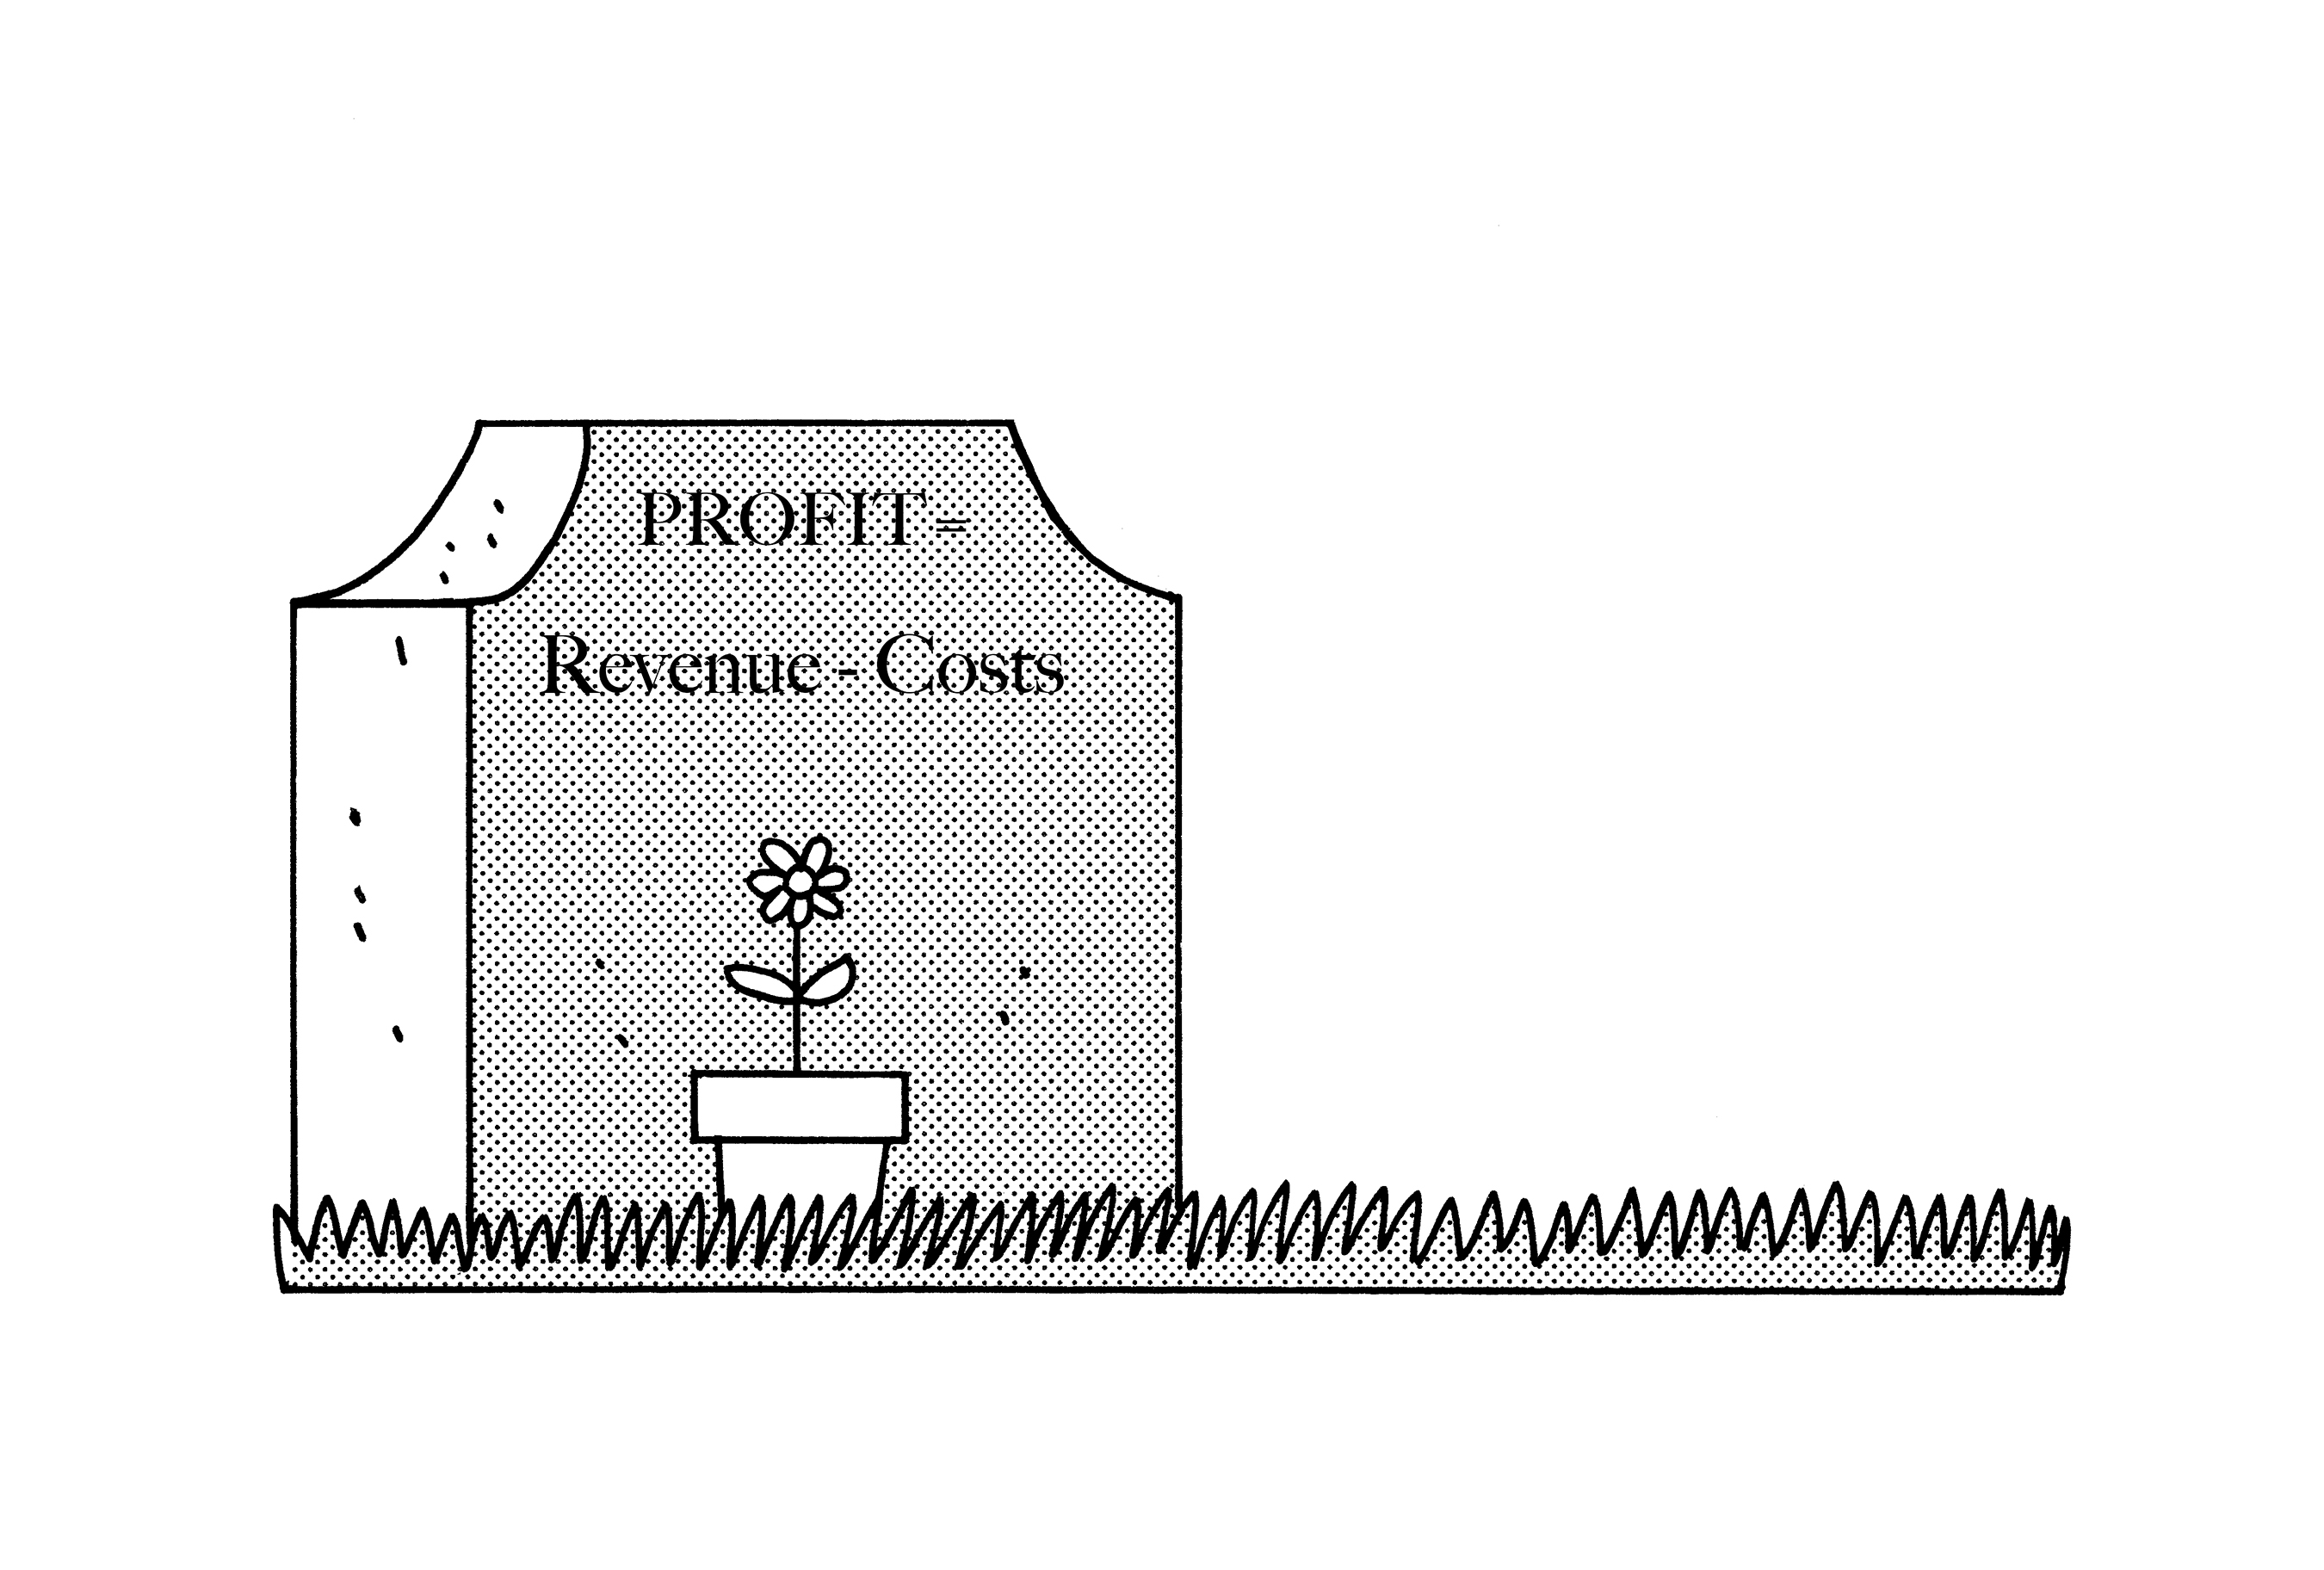 """Illustration with gravestone engraved with """"Profit = Revenue minus costs"""""""""""